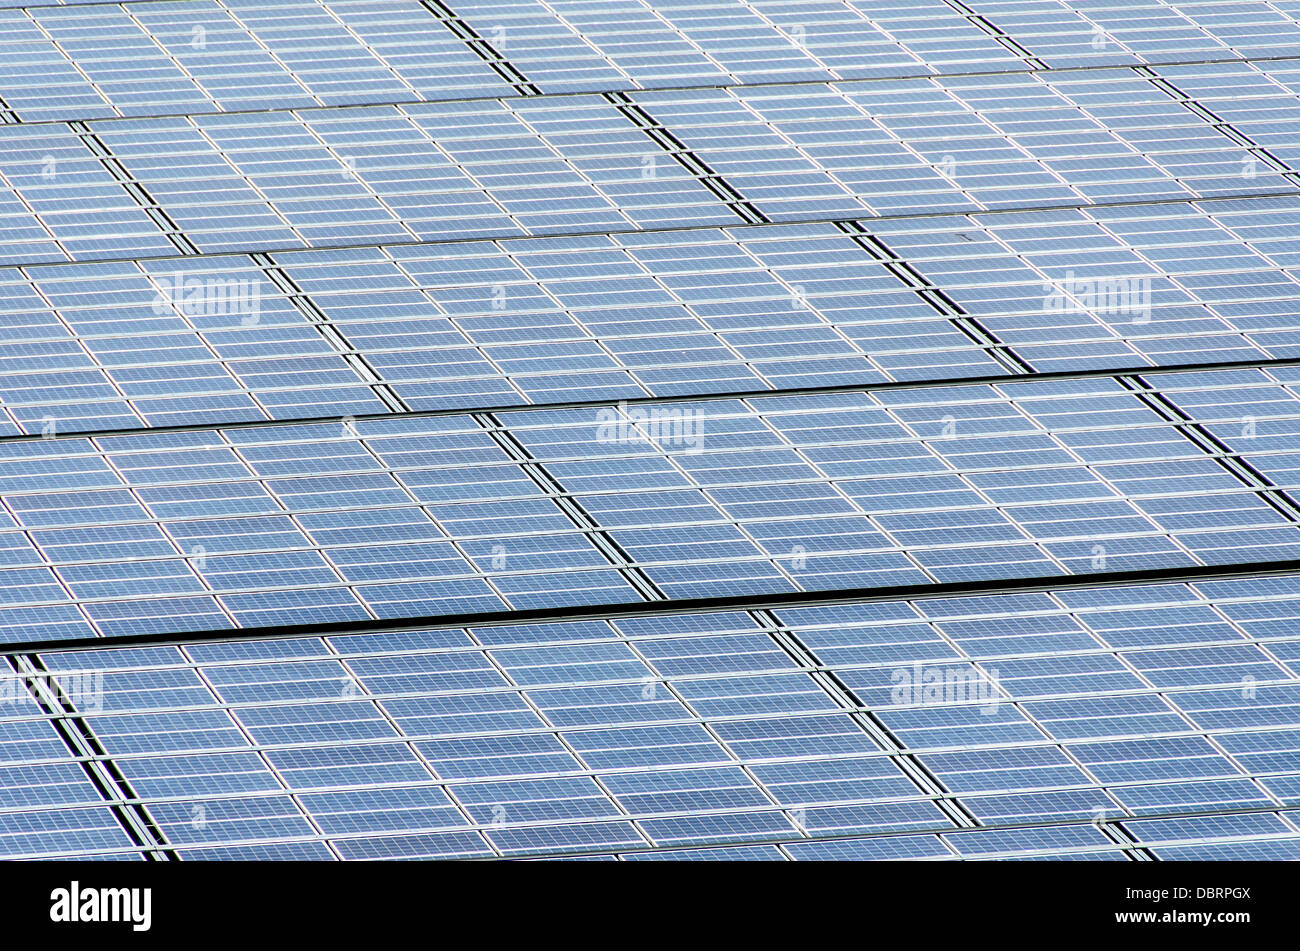 An array of solar photovoltaic panels used for converting sunlight on electrical committee, electrical receptacle, electrical fuse, electrical boxes types, electrical power, electrical conduit, electrical pipe, electrical multimeter, electrical junction boxes, electrical header, electrical equipment, electrical plug in, electrical switches, electrical disconnect, electrical cabinet, electrical monitor, electrical switch, electrical work, electrical control station, electrical switchboard,